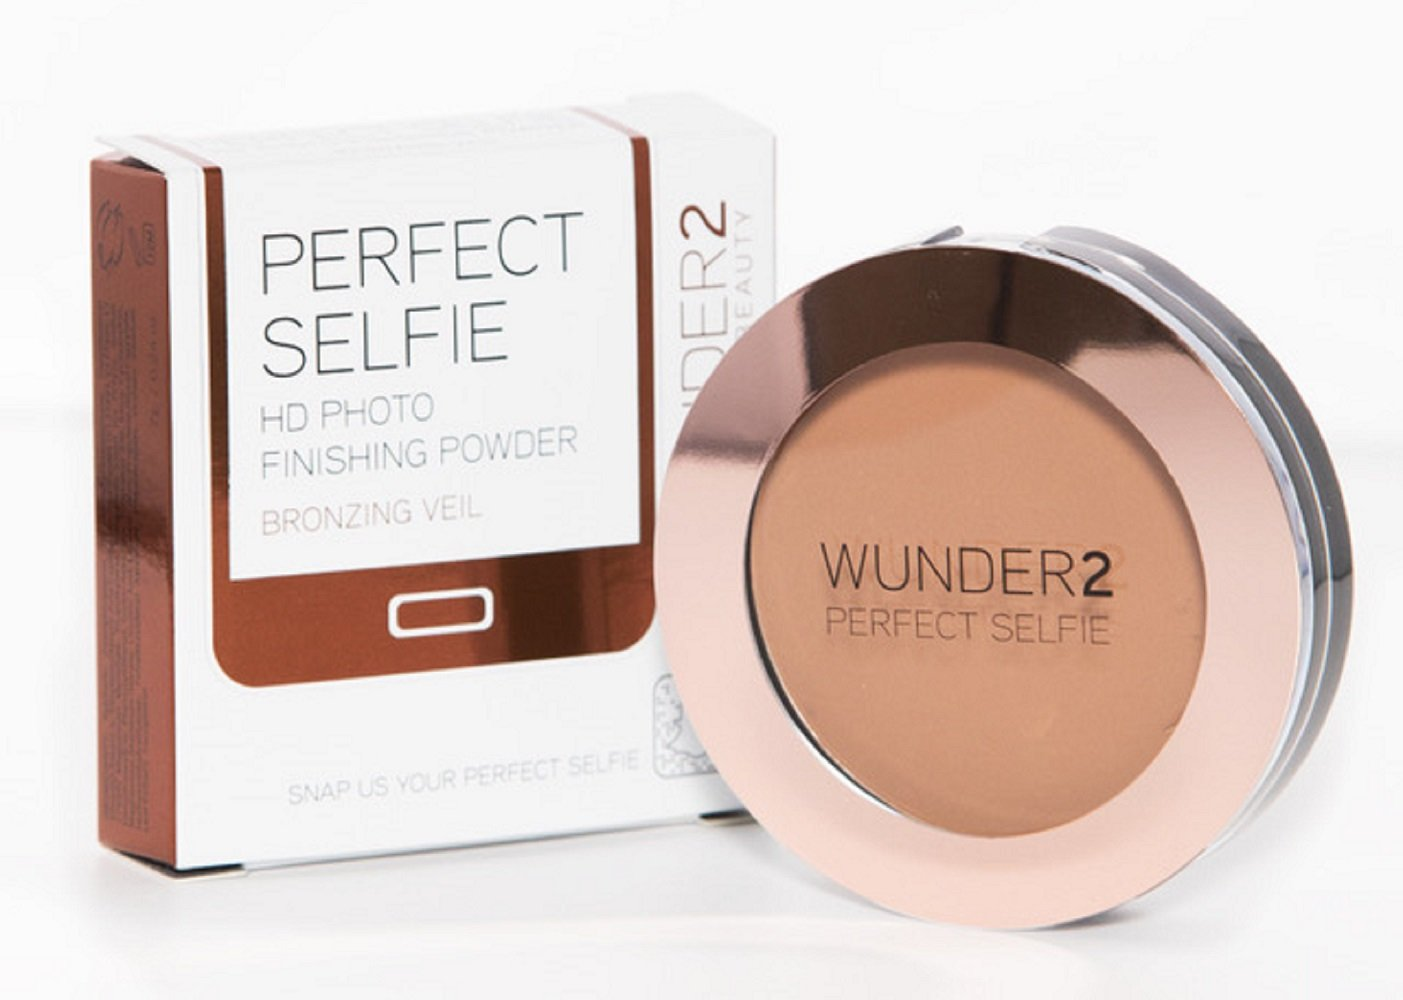 WUNDER2 Perfect Selfie - HD Photo Finishing Powder, 7 Gram KF Beauty Perfect_Selfie